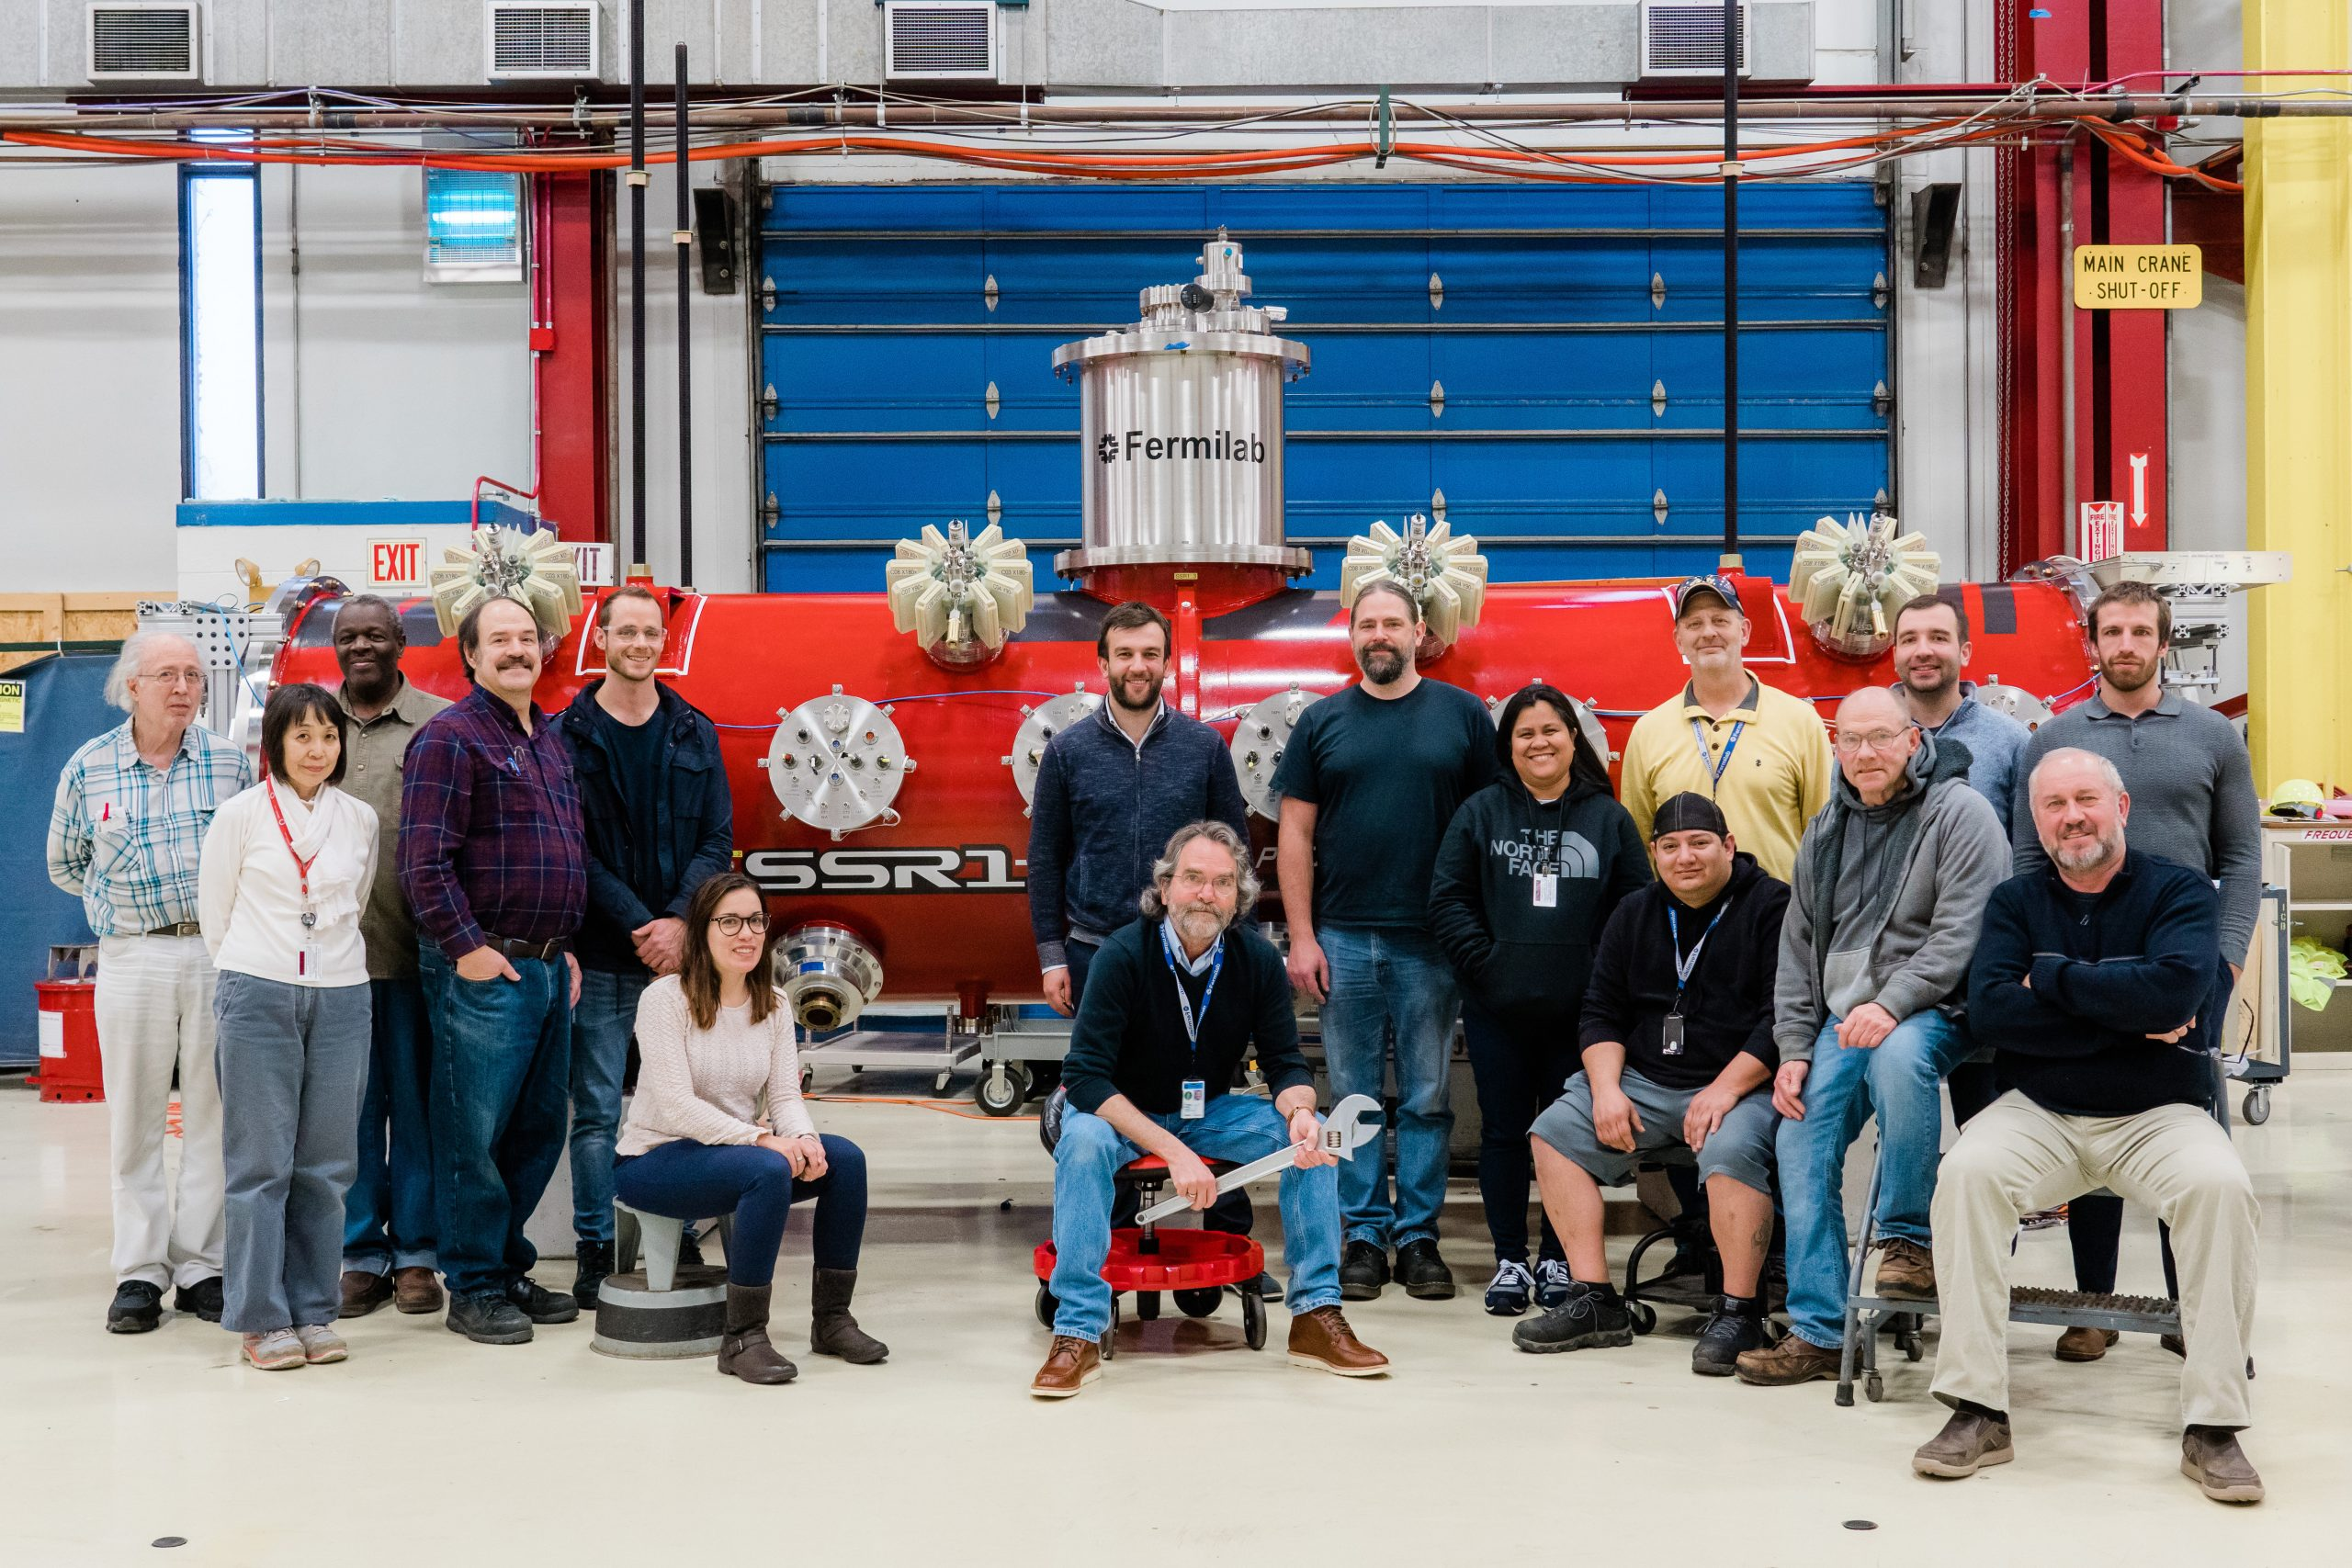 (4/4) Some of the engineers, technicians, and welders who have been working on SSR1 get together for a picture. PIP-II, accelerator, accelerator technology, cryomodule, people Photo: Tom Nicol